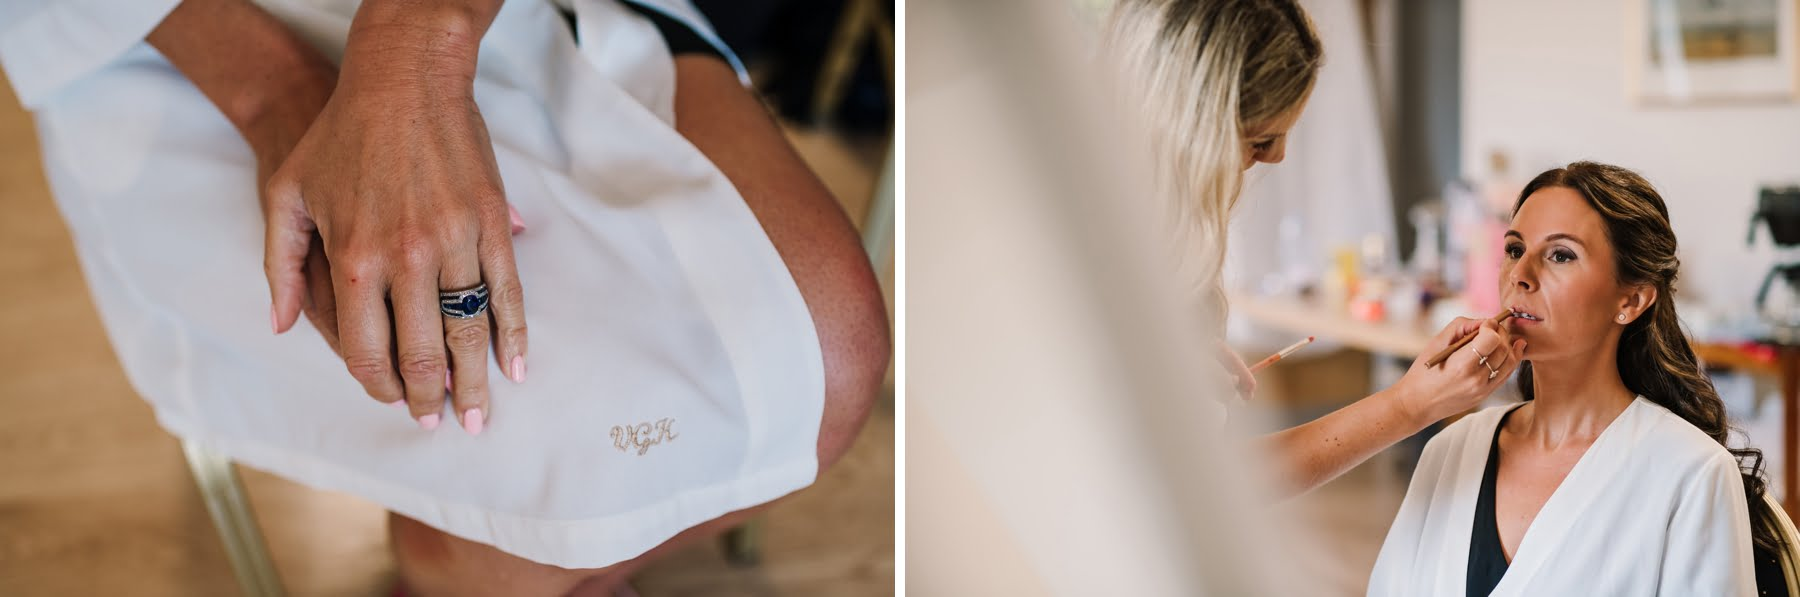 Luccombe Farm Wedding Photography by Rachel Elizabeth Photography